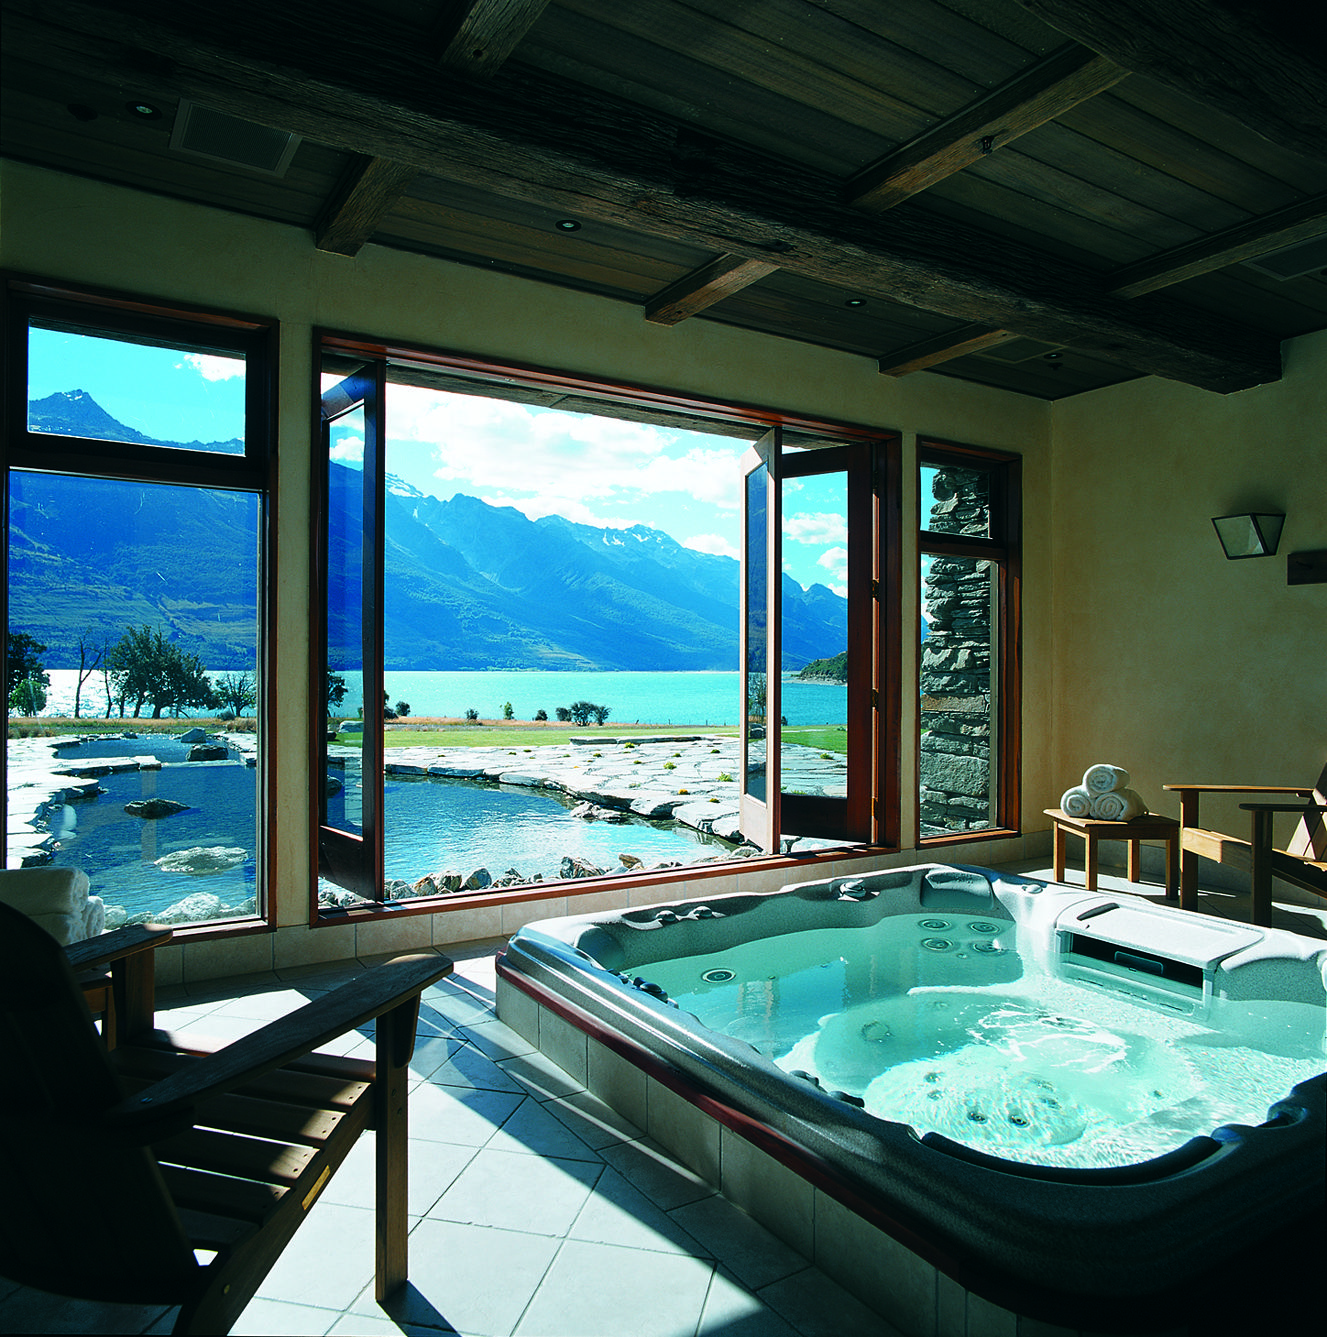 Blanket Bay Lodge Glenorchy New Zealand With Images My Dream